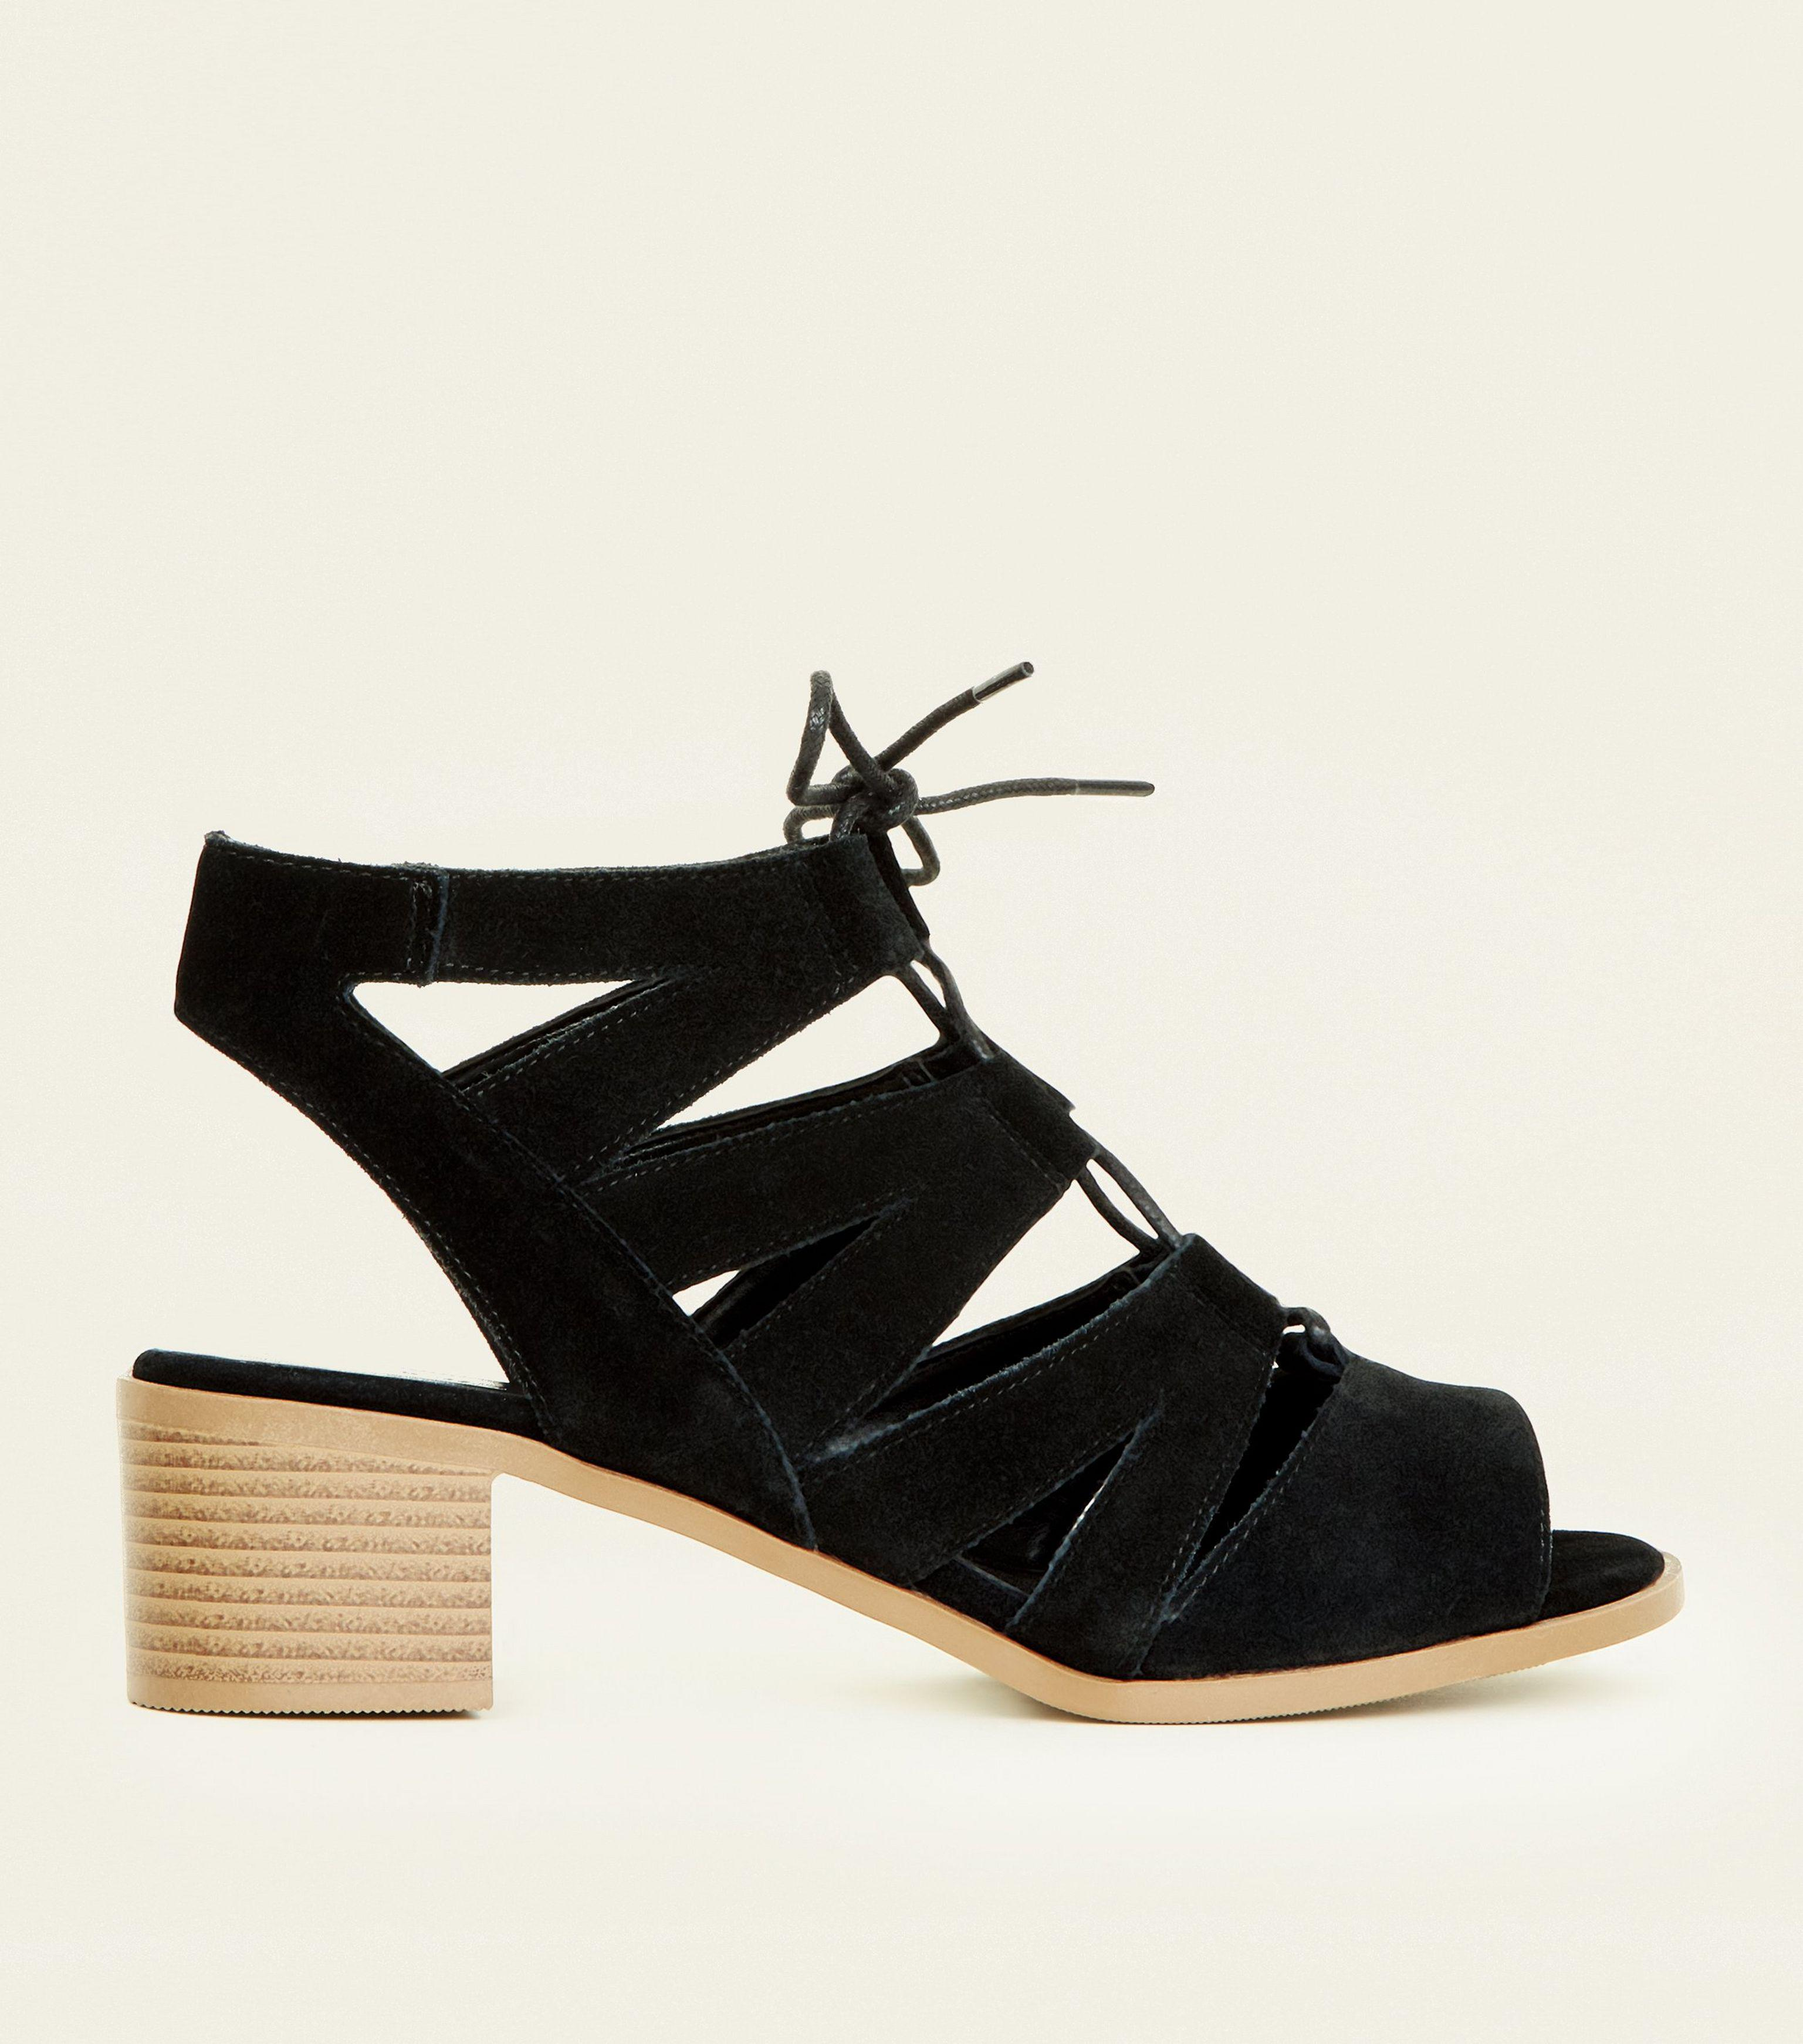 1e706e8b1c5 New Look Black Suede Low Block Heel Ghillie Sandals in Black - Lyst